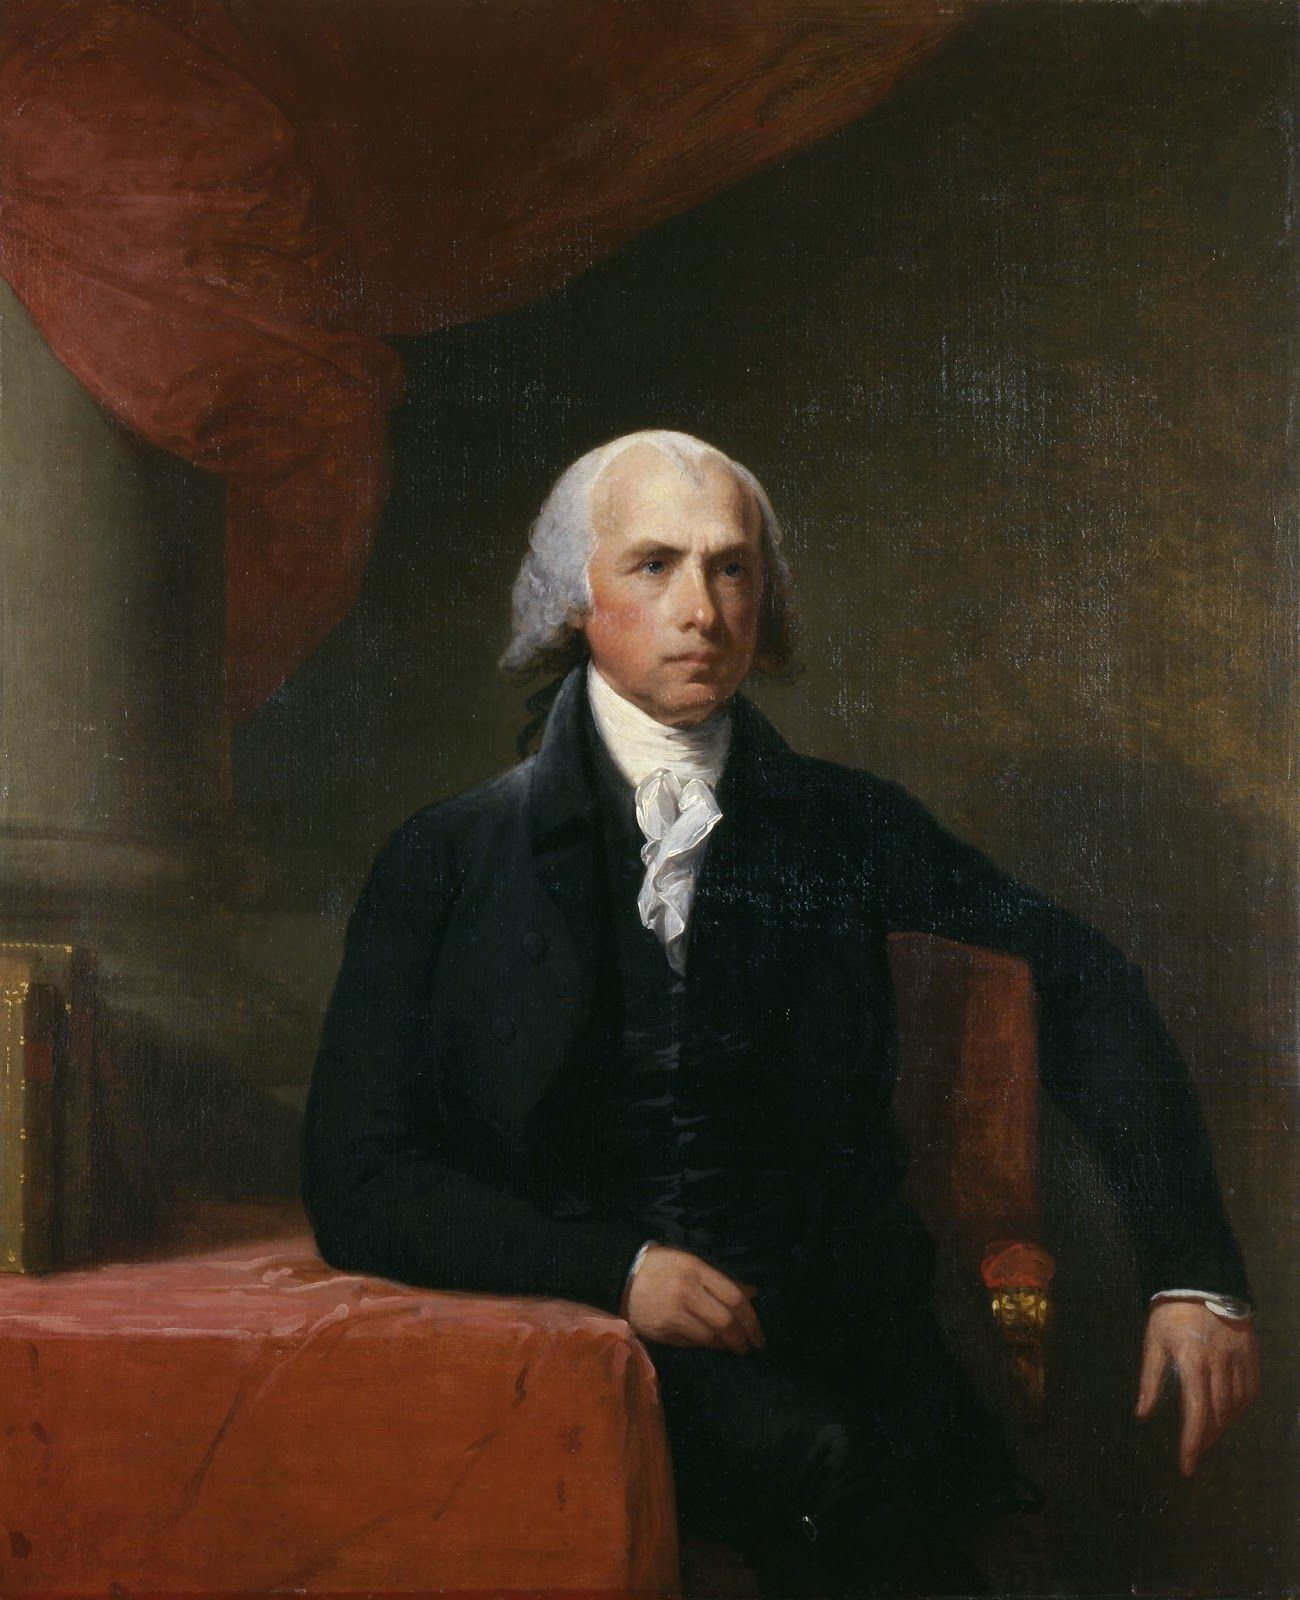 A portrait of James Madison